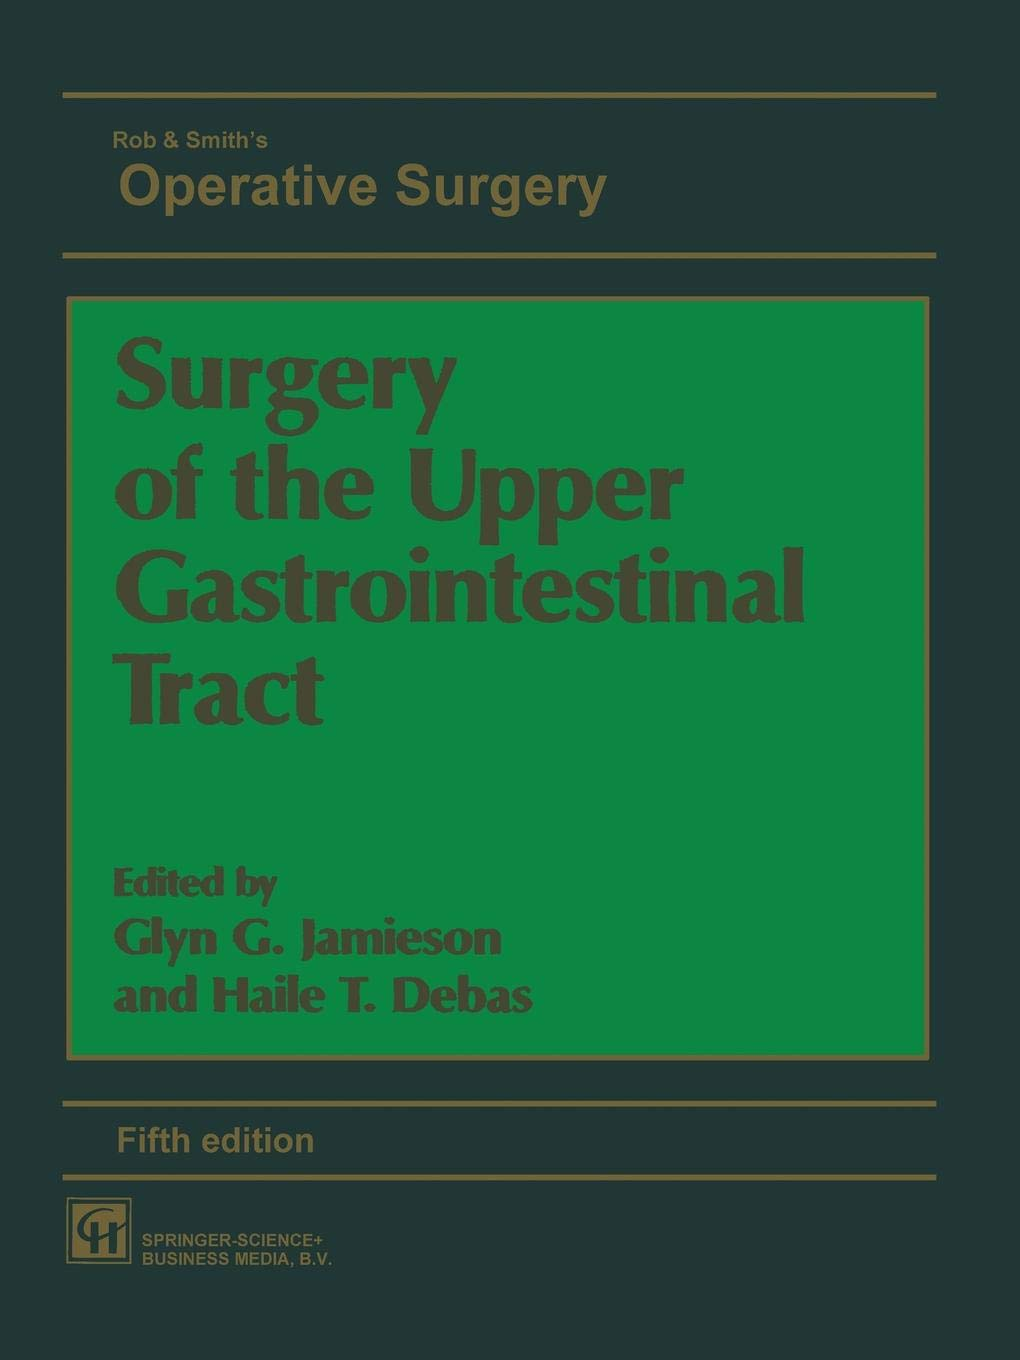 Surgery Of The Upper Gastrointestinal Tract  ROB AND SMITH'S OPERATIVE SURGERY 5TH EDITION Band 1